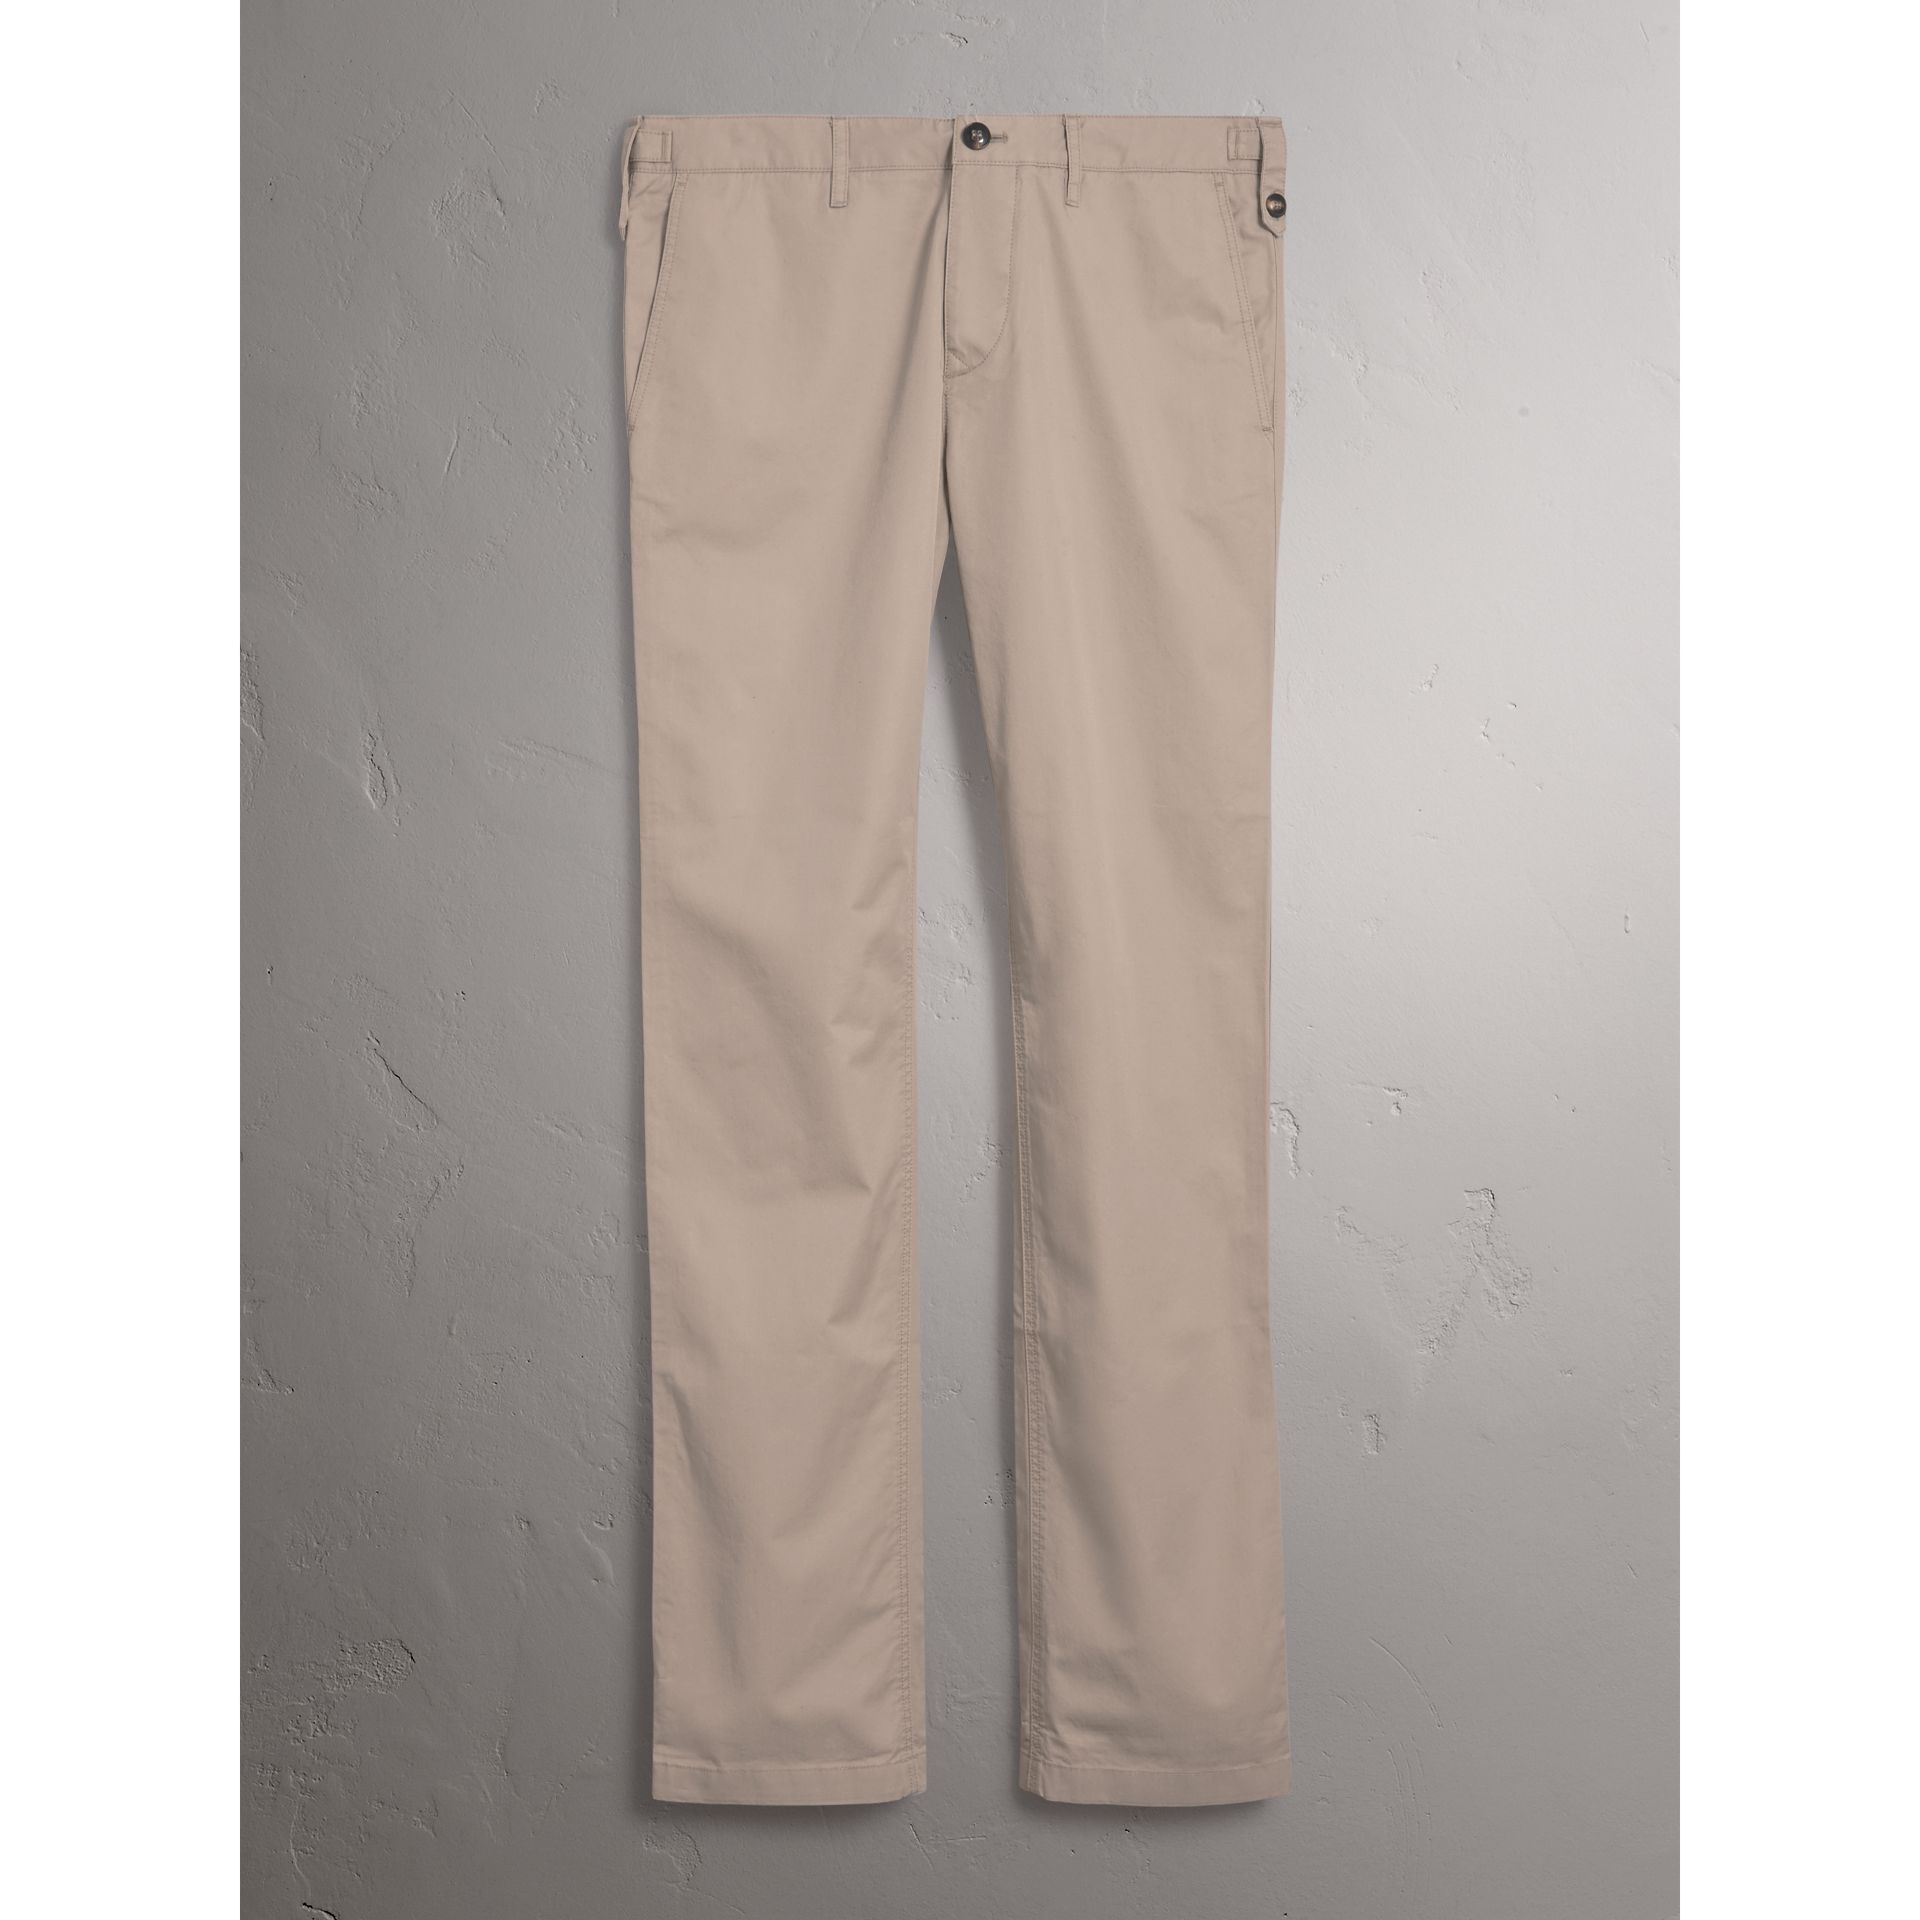 Straight Fit Cotton Chinos in Taupe - Men | Burberry Canada - gallery image 4